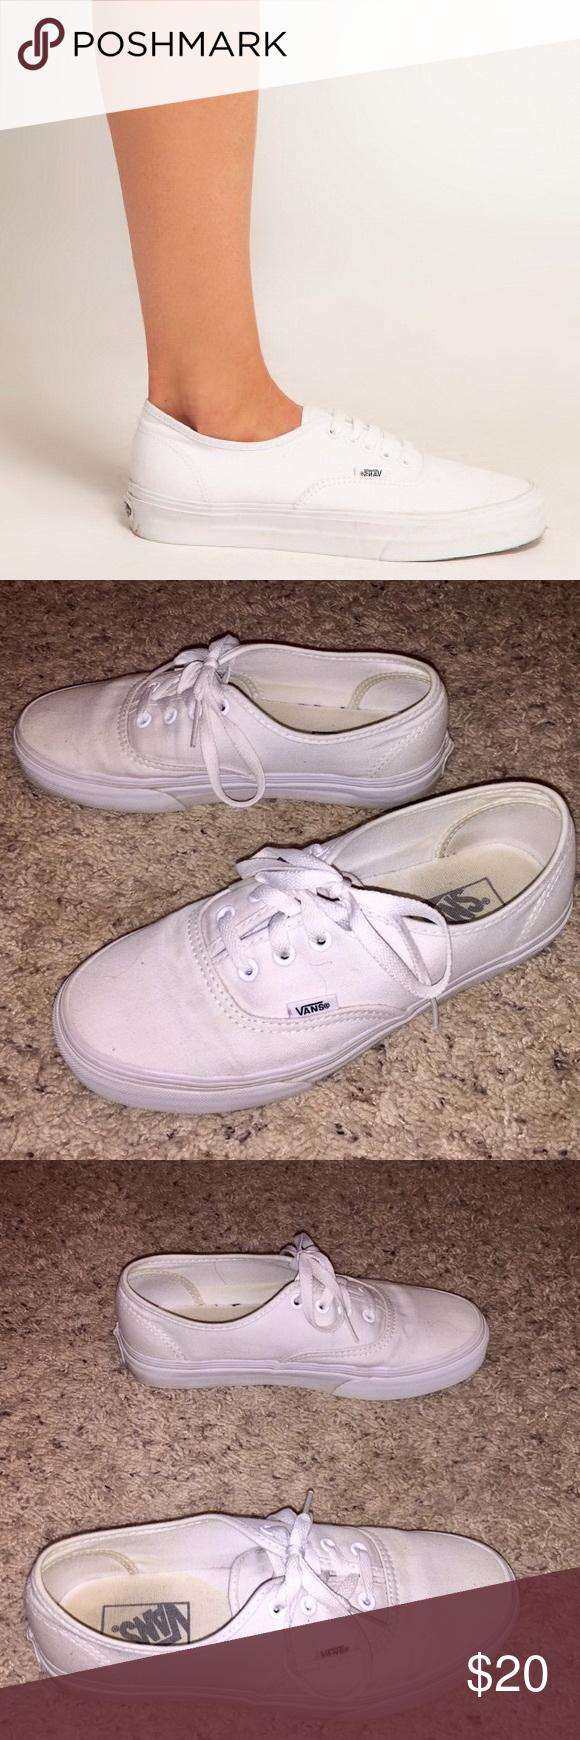 Classic White Lace Up Vans These are the best piece to have in your closet! They go with anything and everything and they are so comfortable. They have been worn, but they still have so much life left in them. Offers acceptable, NO TRADES. Vans Shoes Sneakers